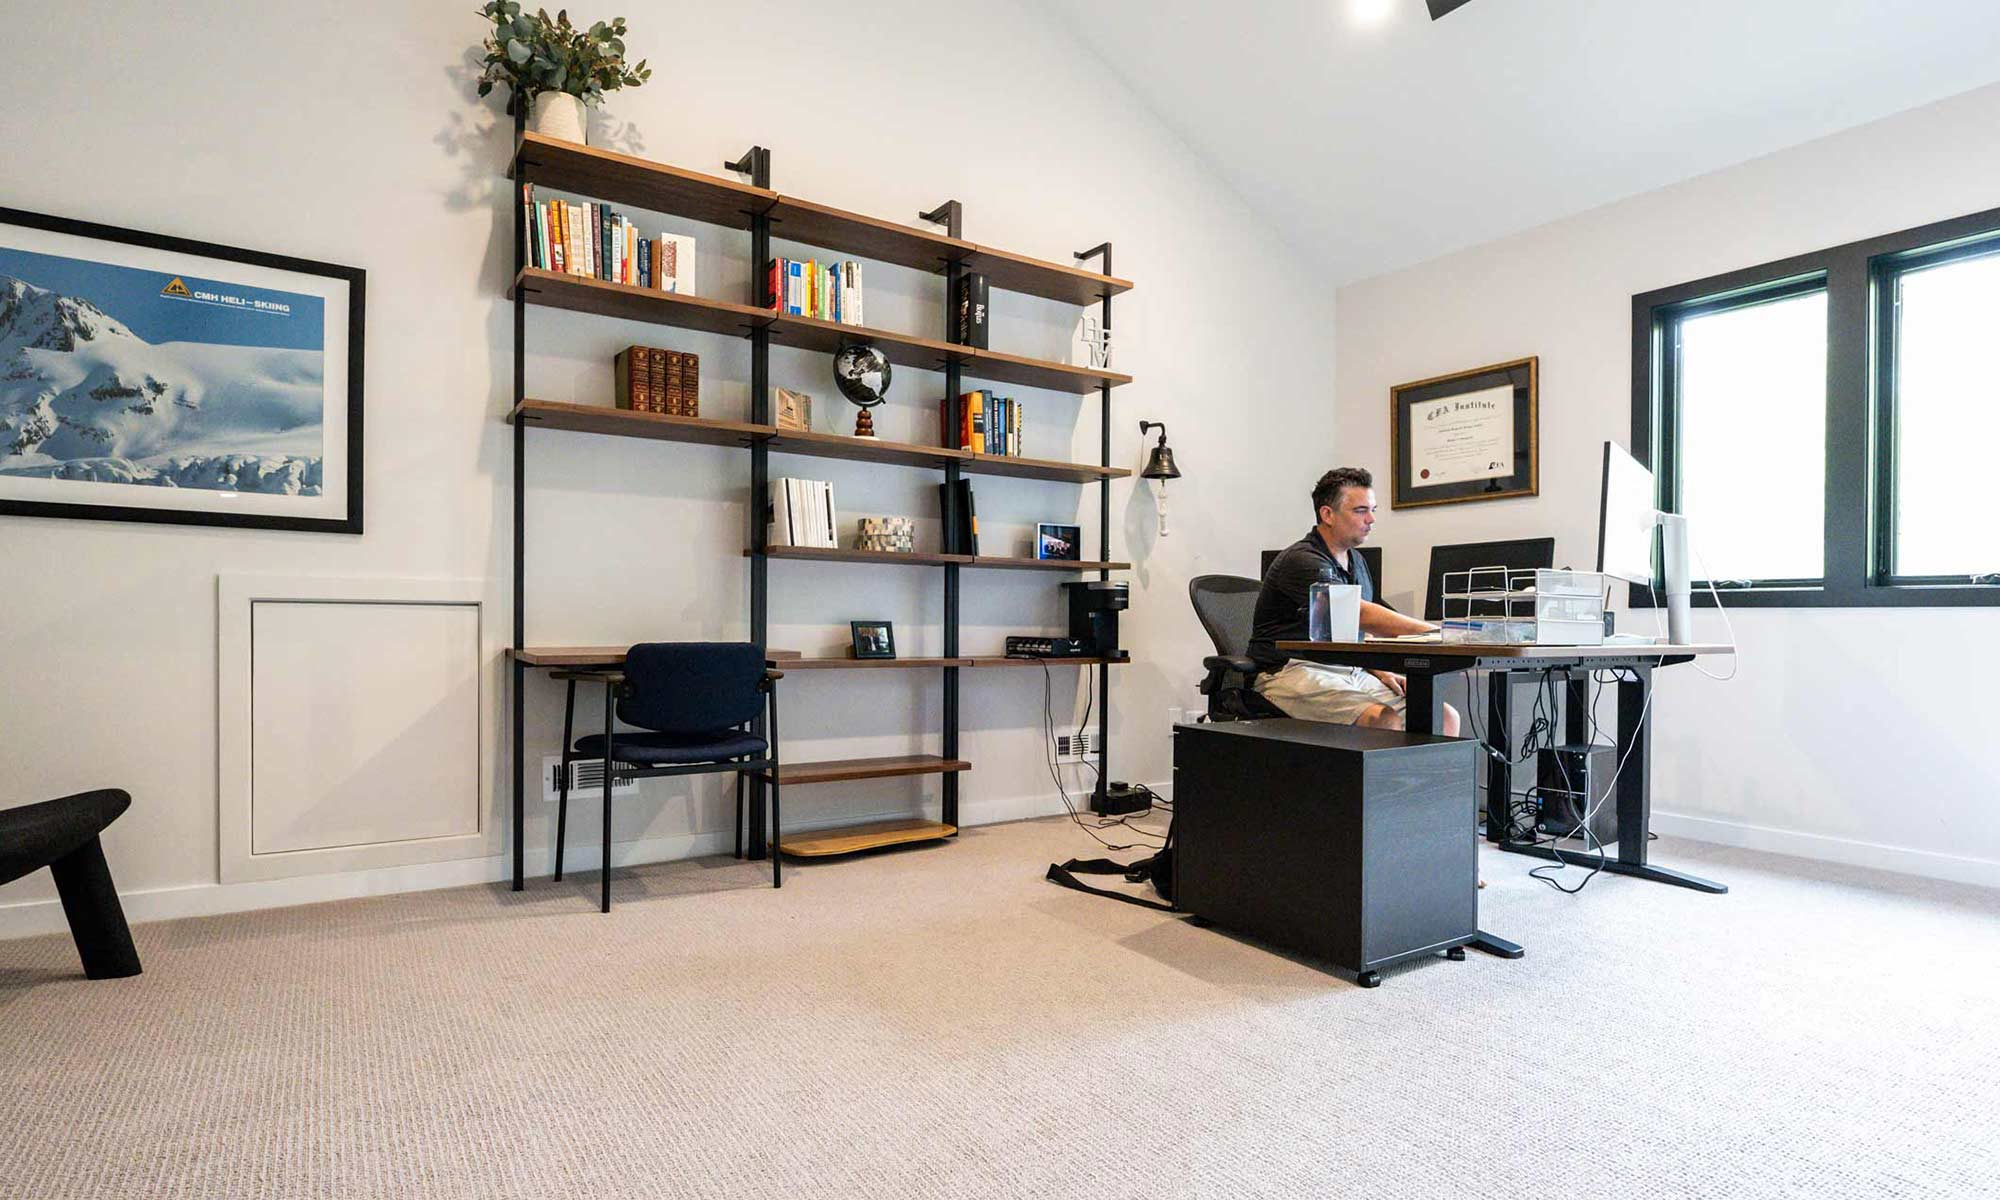 interior view of modern shelves and desk in home office addition with man working